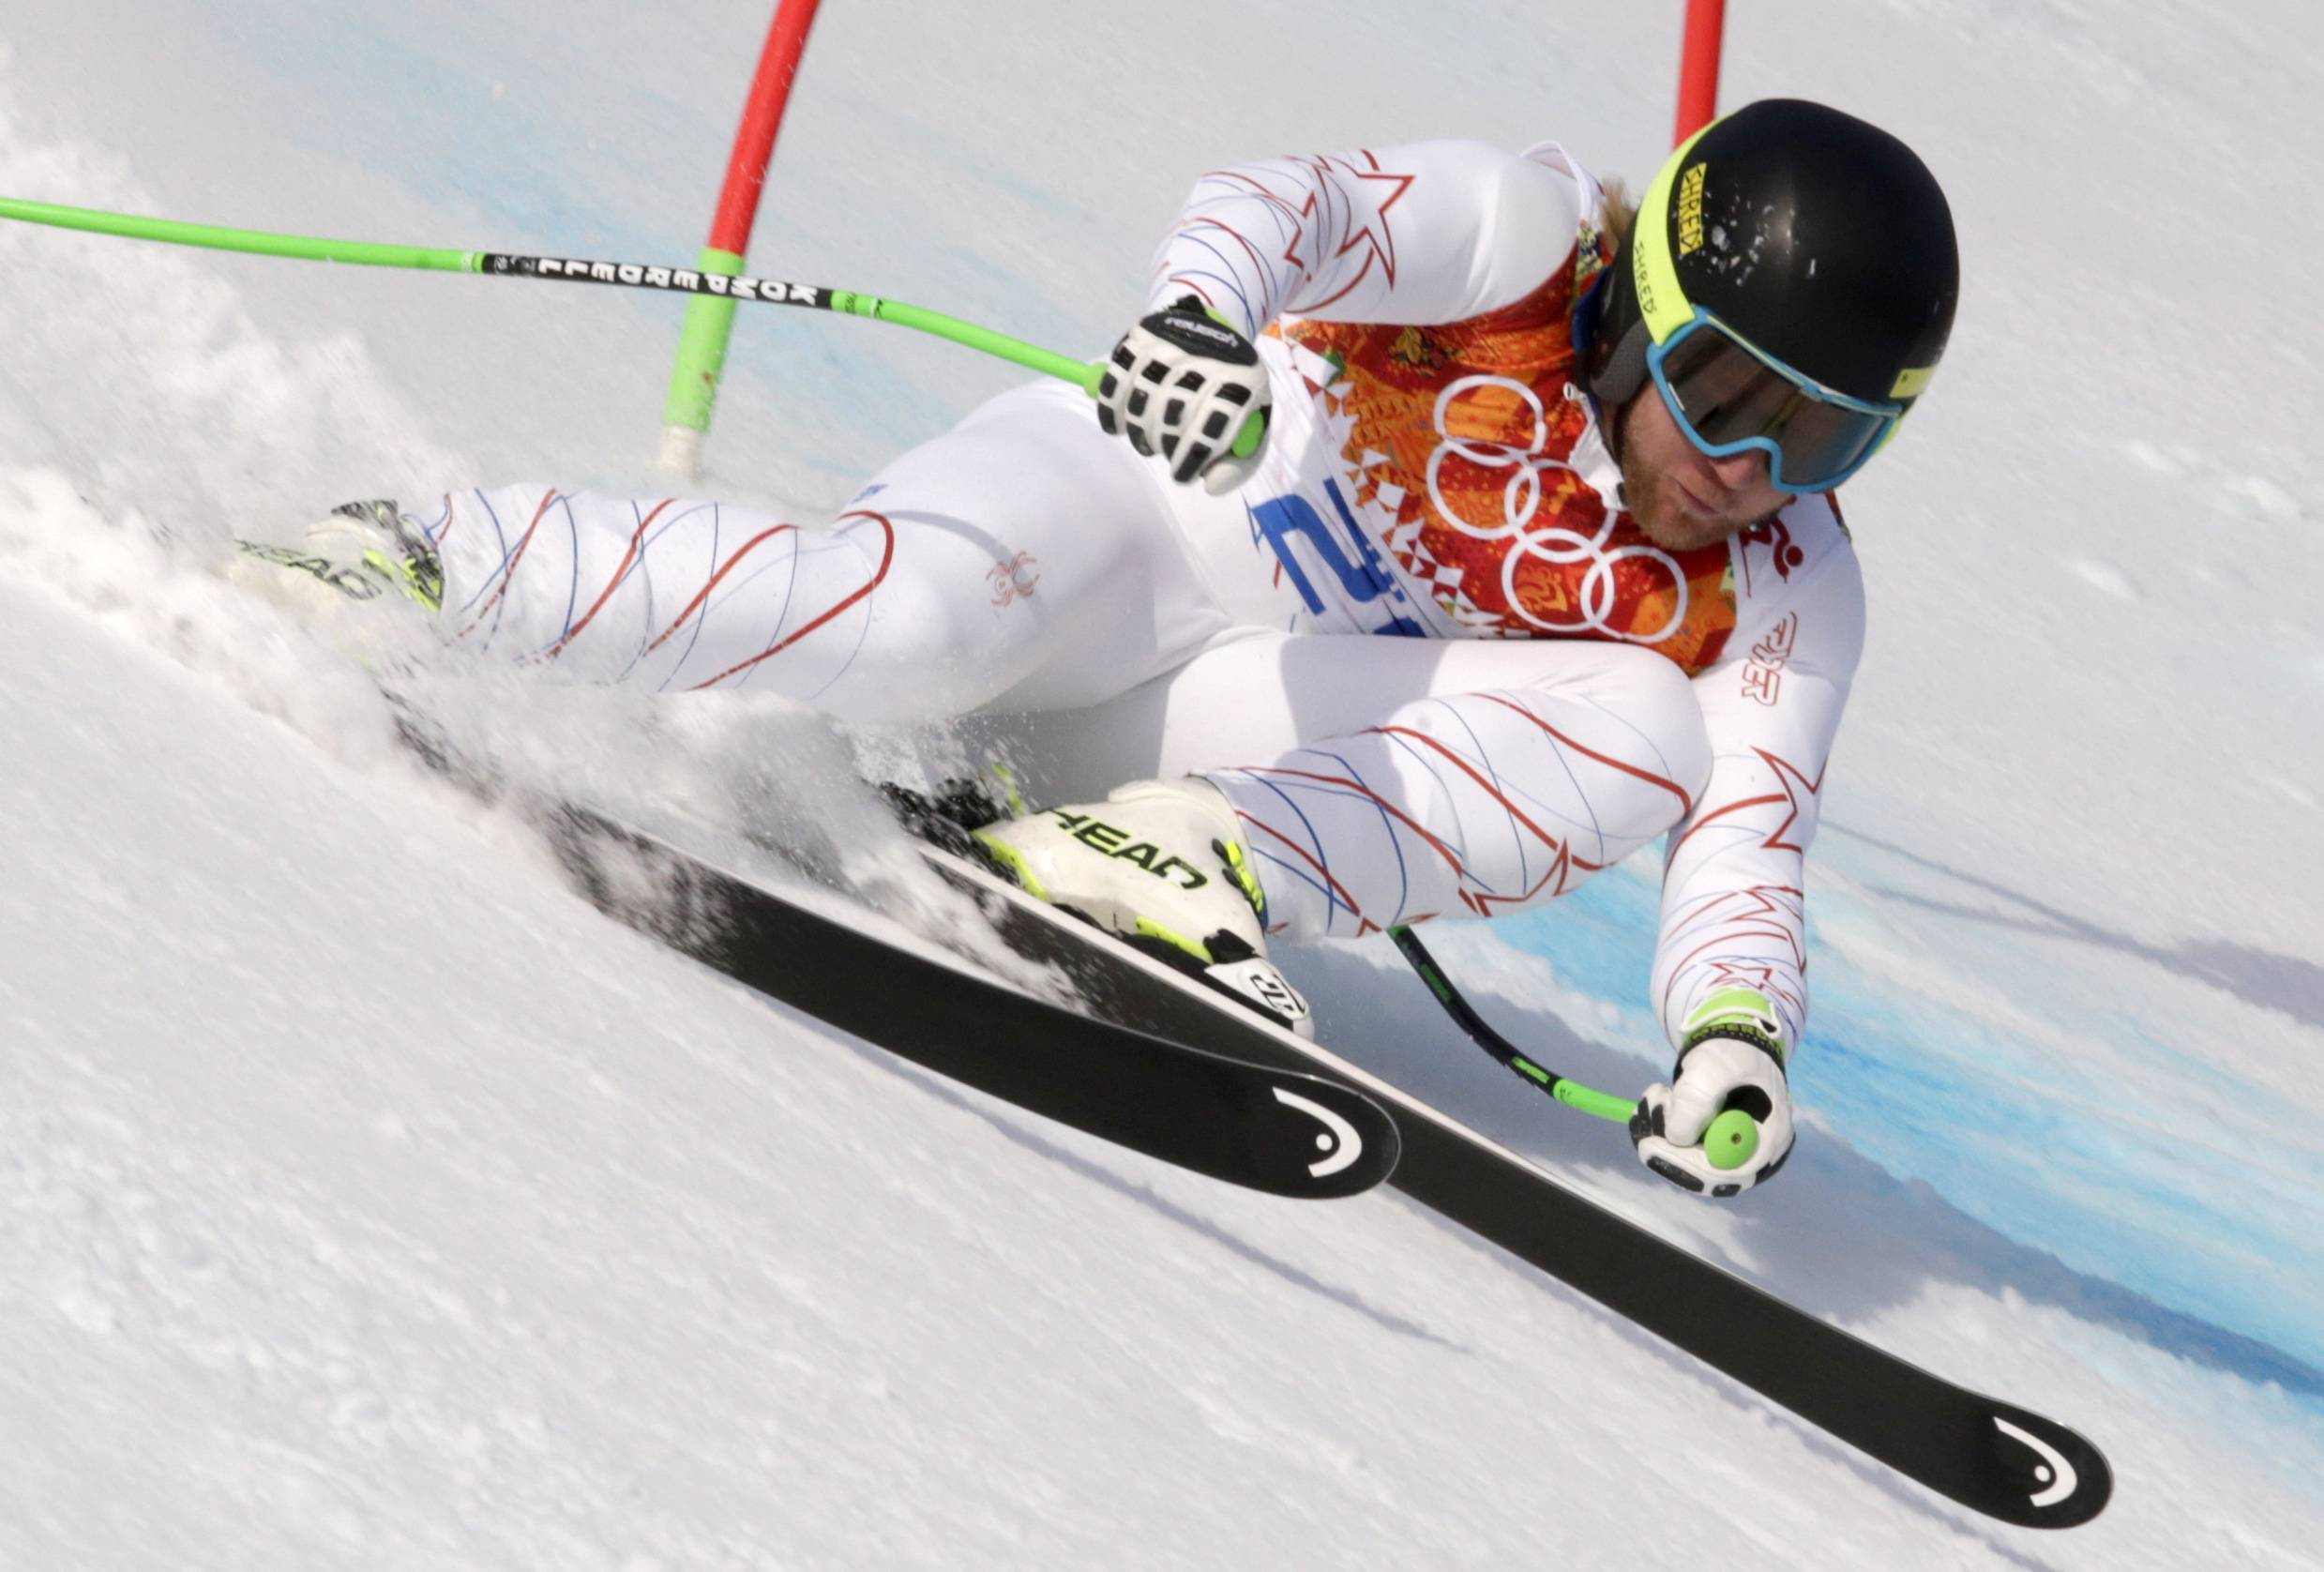 United States' Andrew Weibrecht passes a gate to win the silver medal in the men's super-G at the Sochi 2014 Winter Olympics, Sunday, Feb. 16, 2014, in Krasnaya Polyana, Russia.